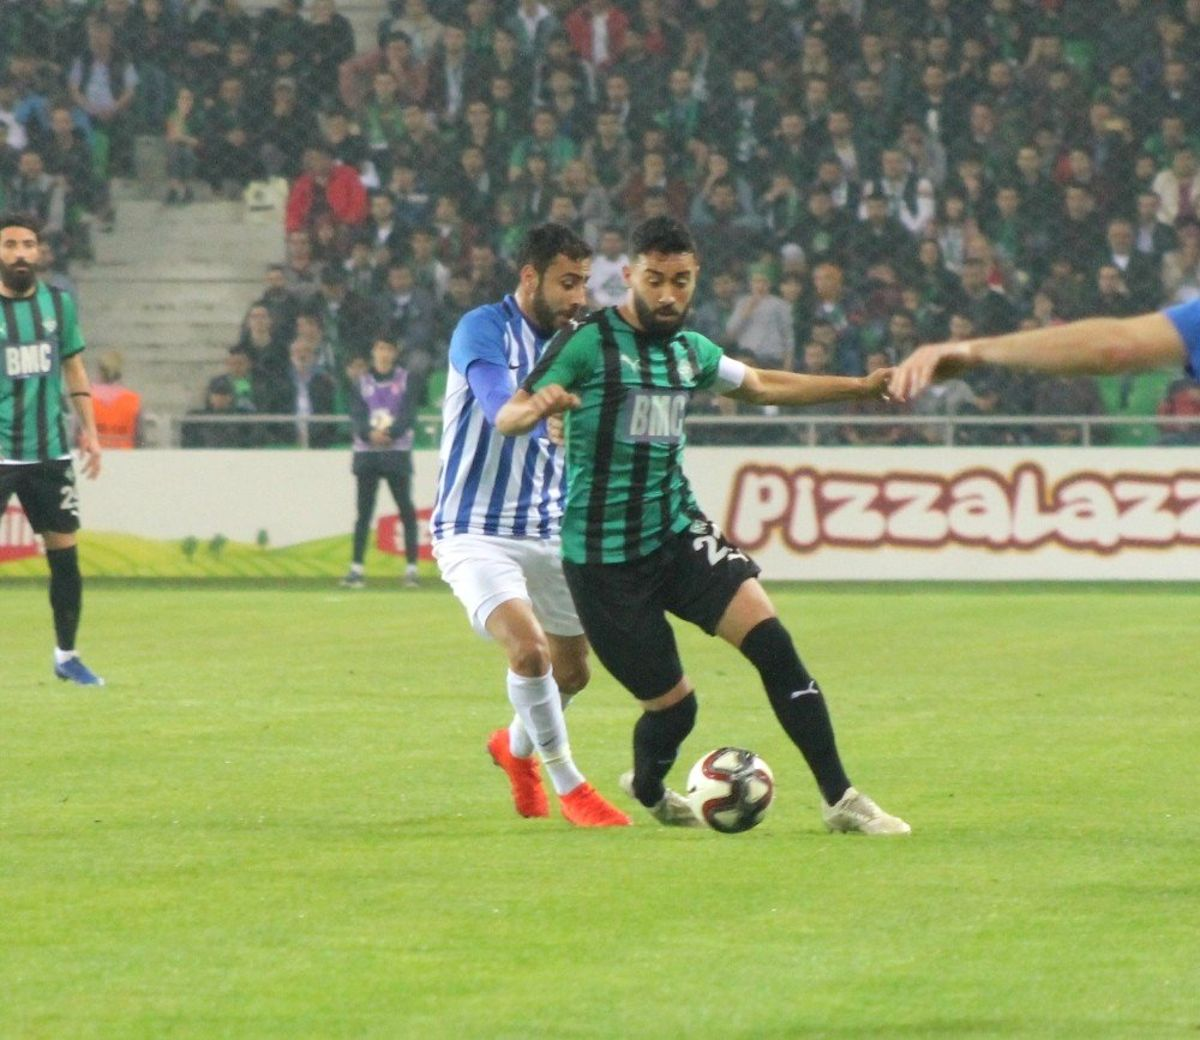 Tff 2. Lig Play-Off Yarı Final: Sakaryaspor: 4 - Sarıyer: 0, System.String[]